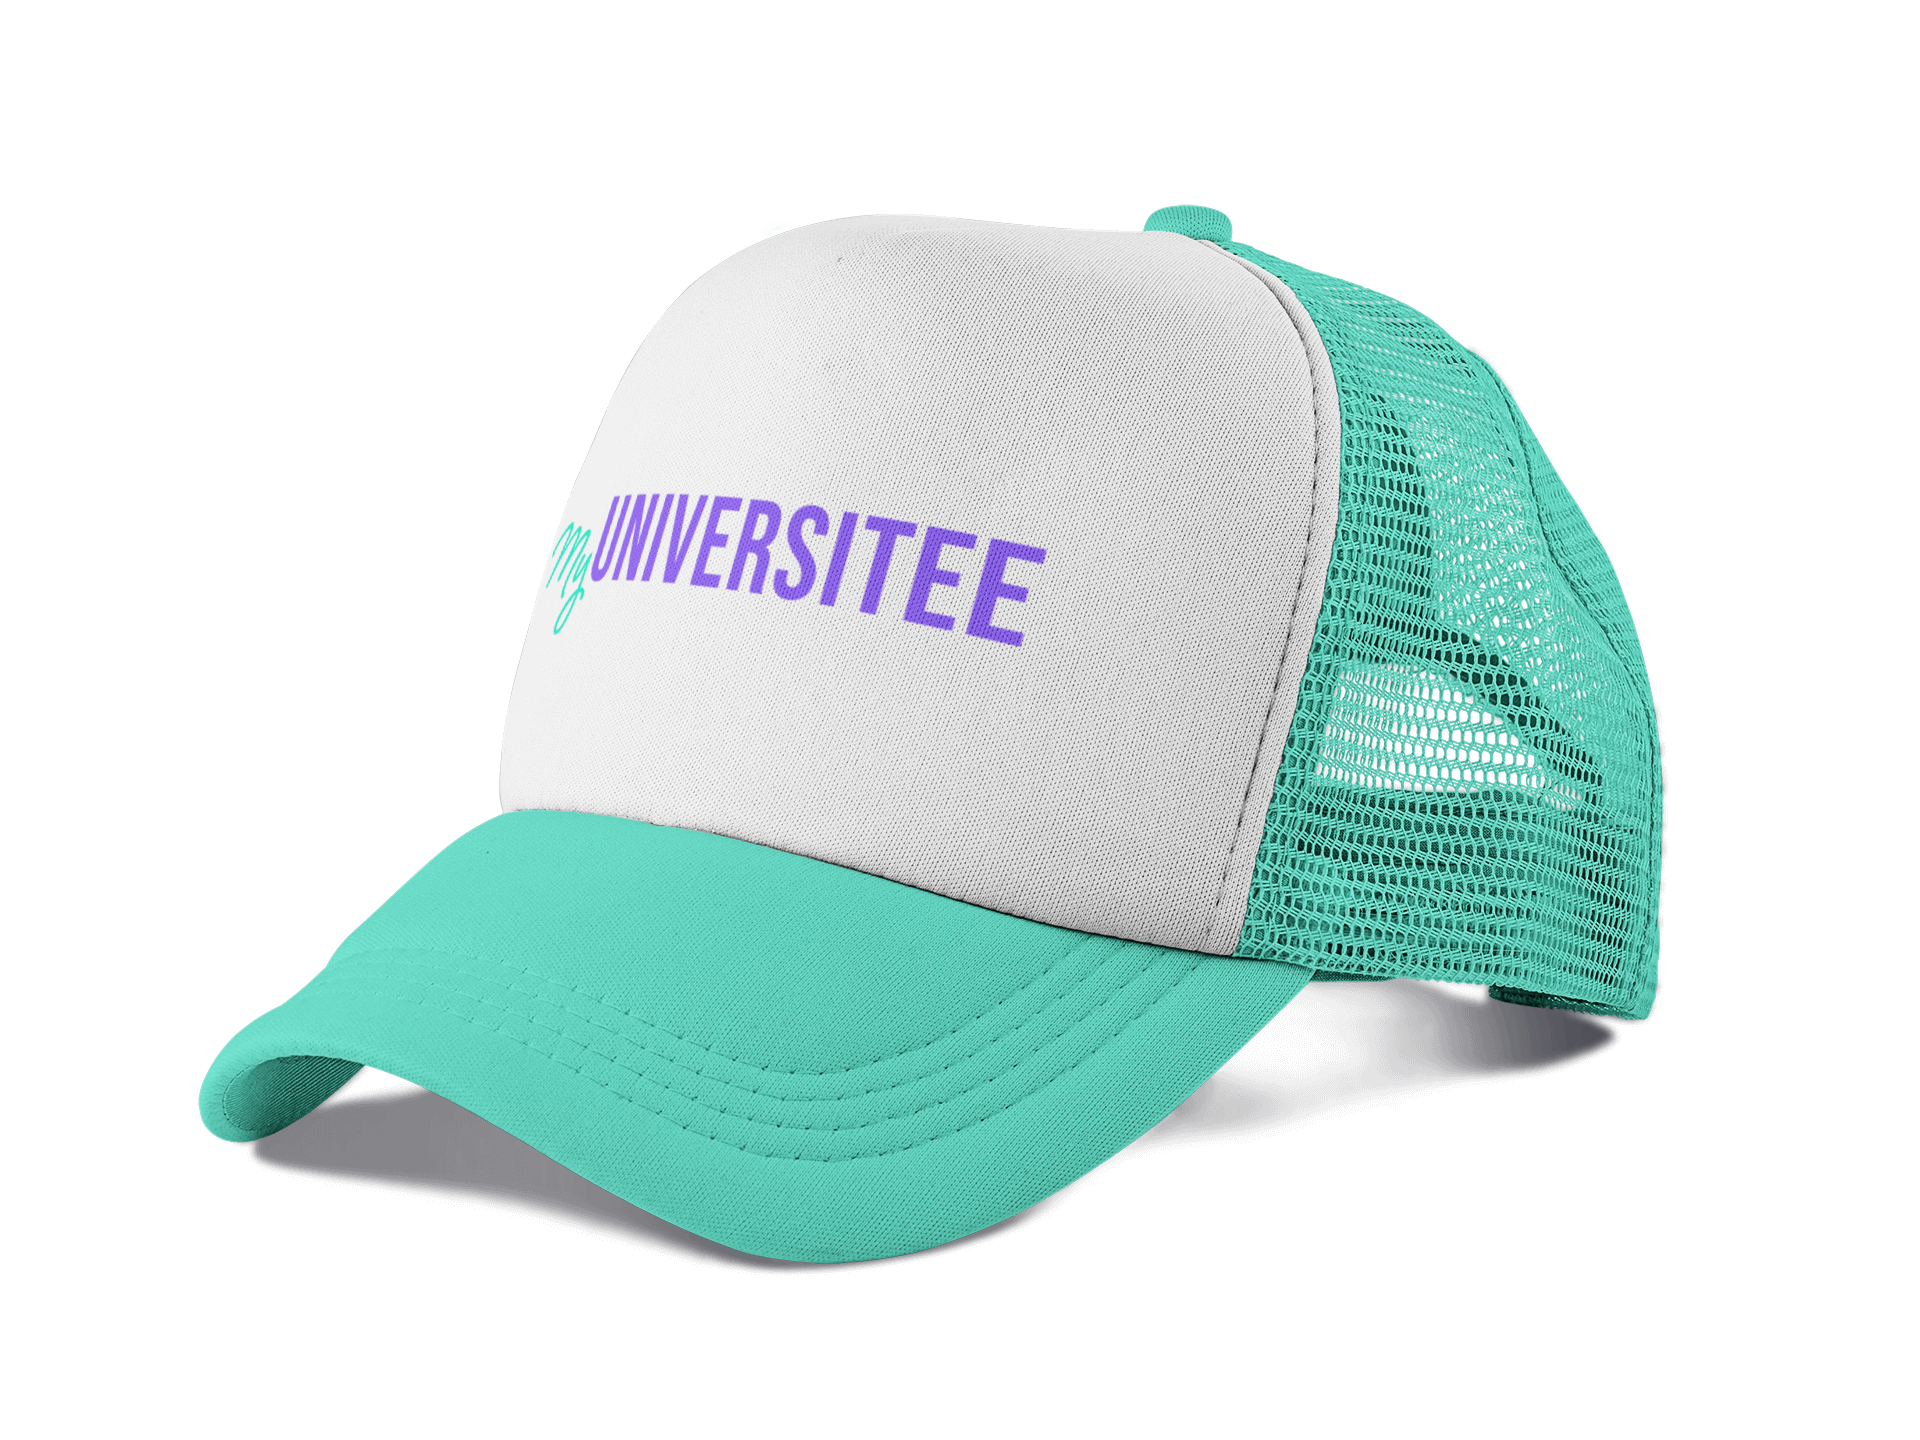 side-view-of-a-trucker-hat-mockup-11708a